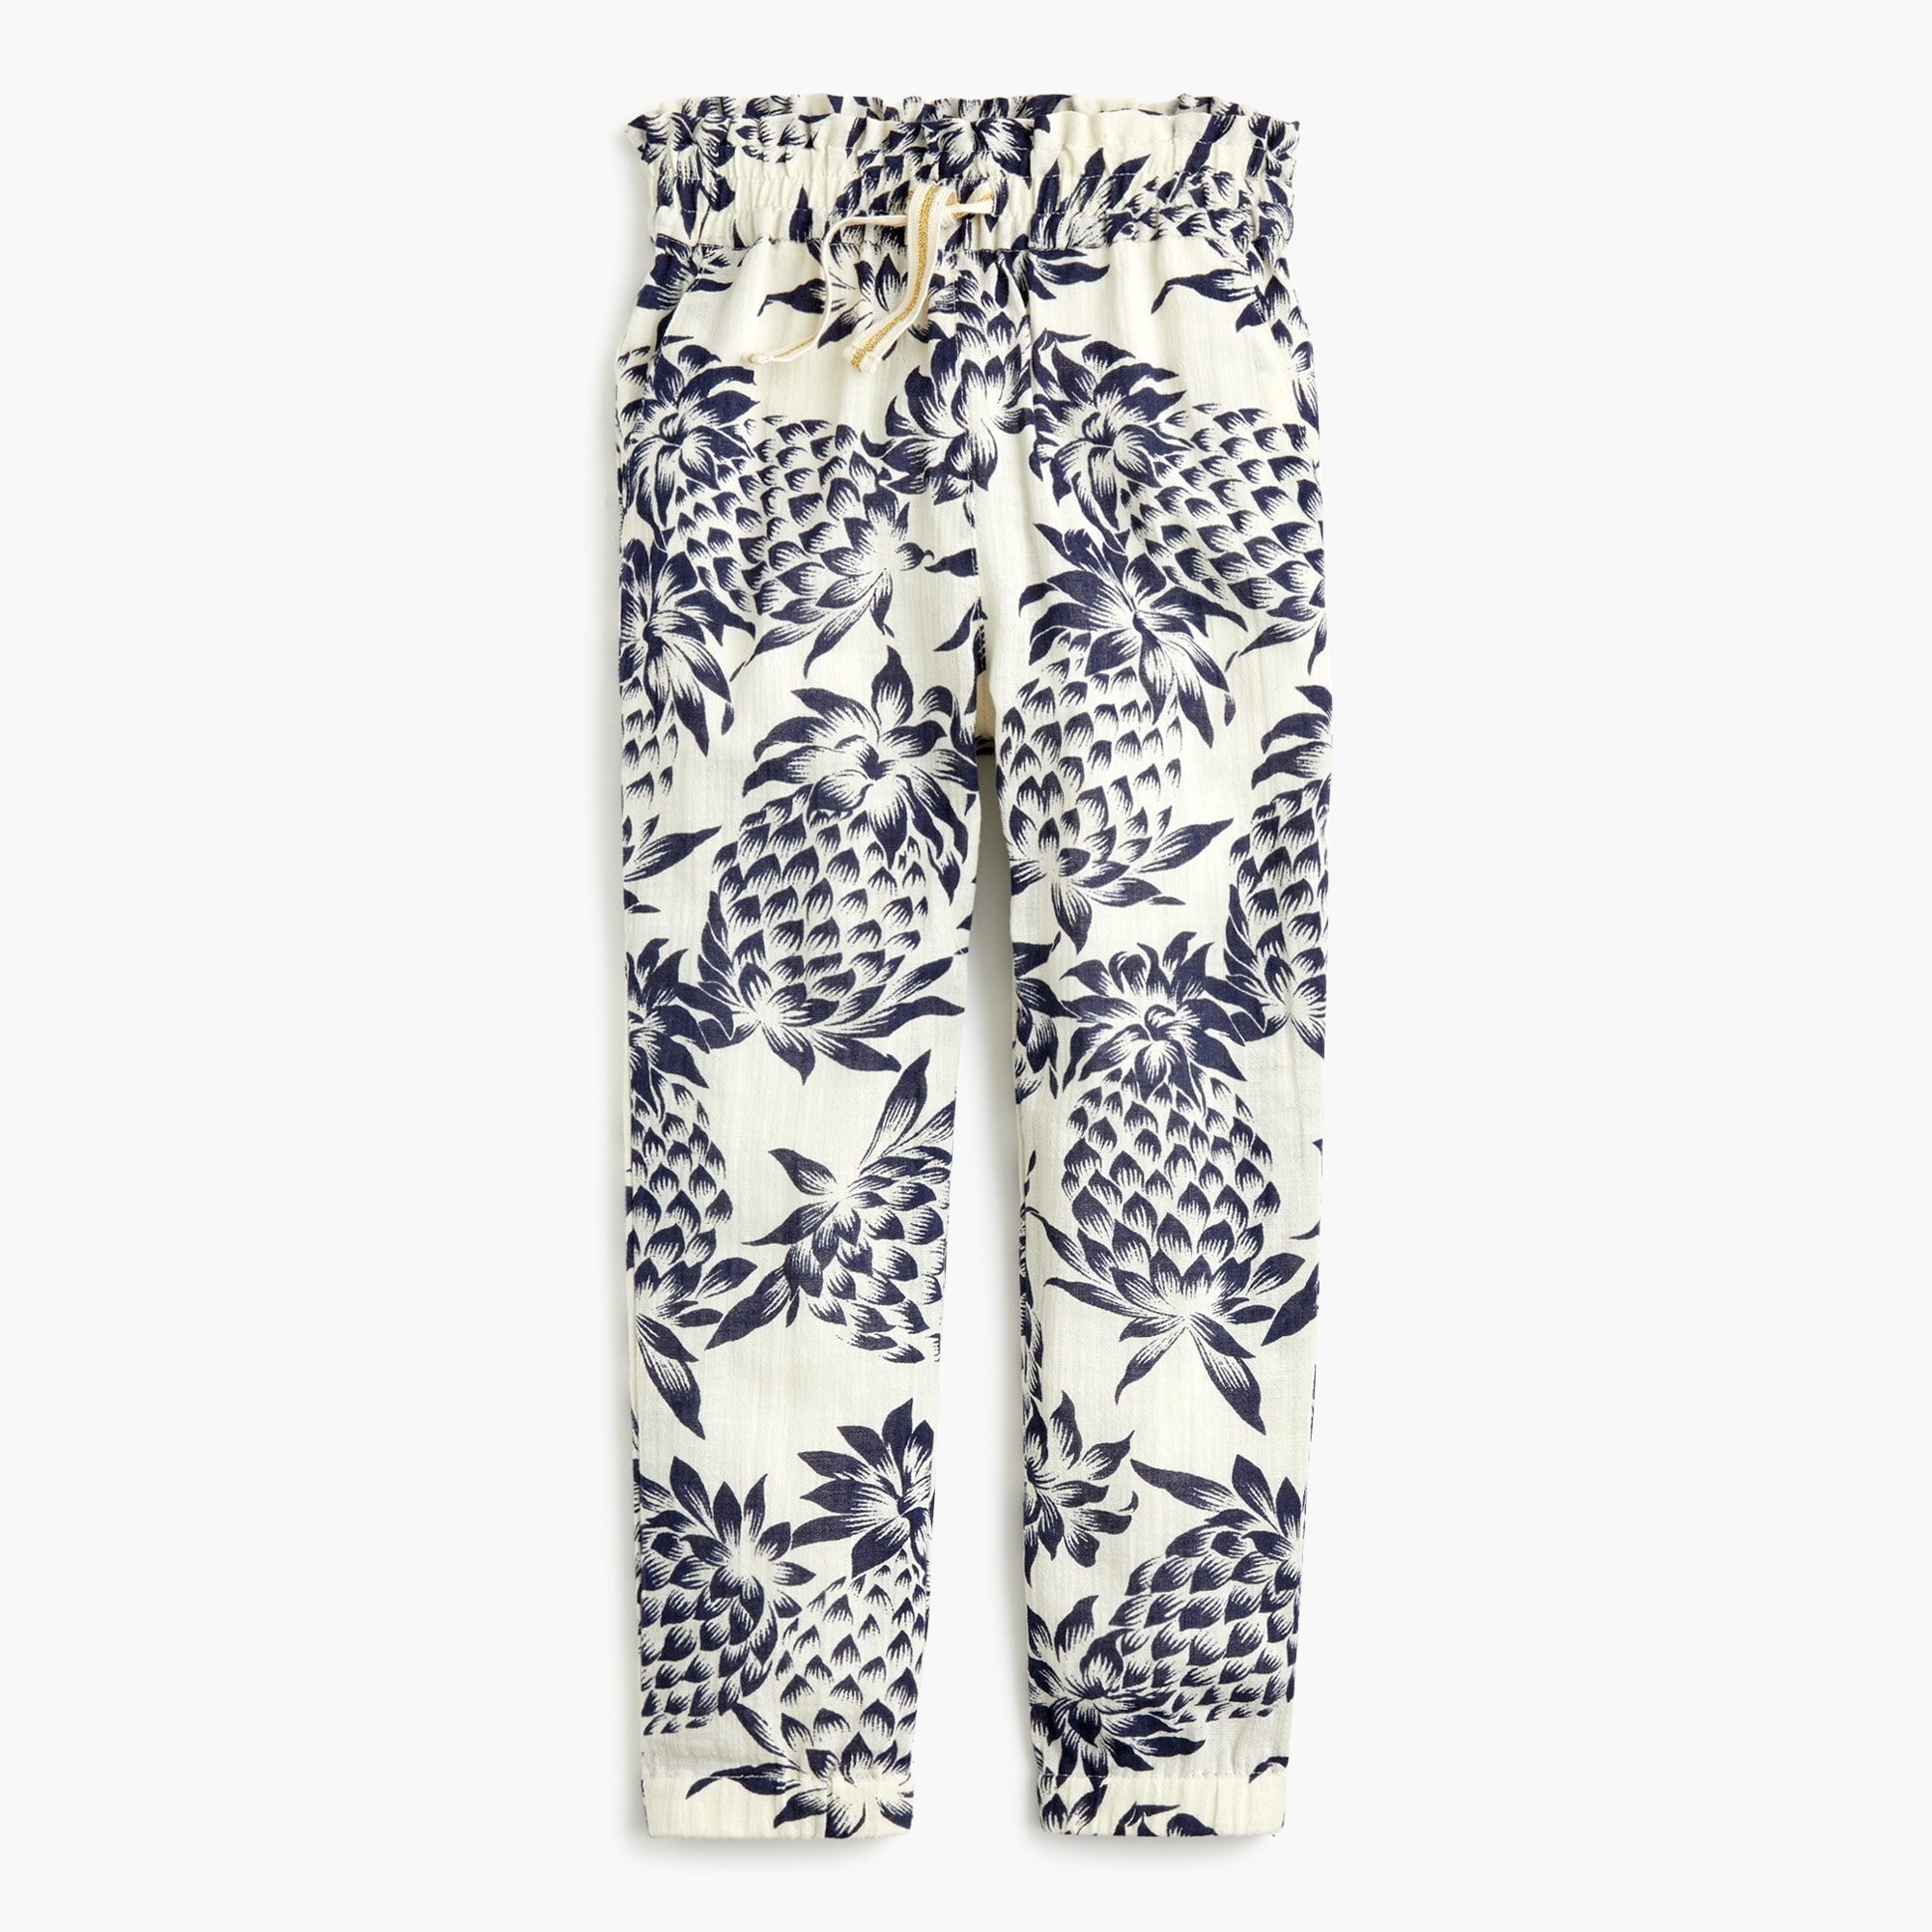 Image 3 for Girls' drawstring pant in pineapple print